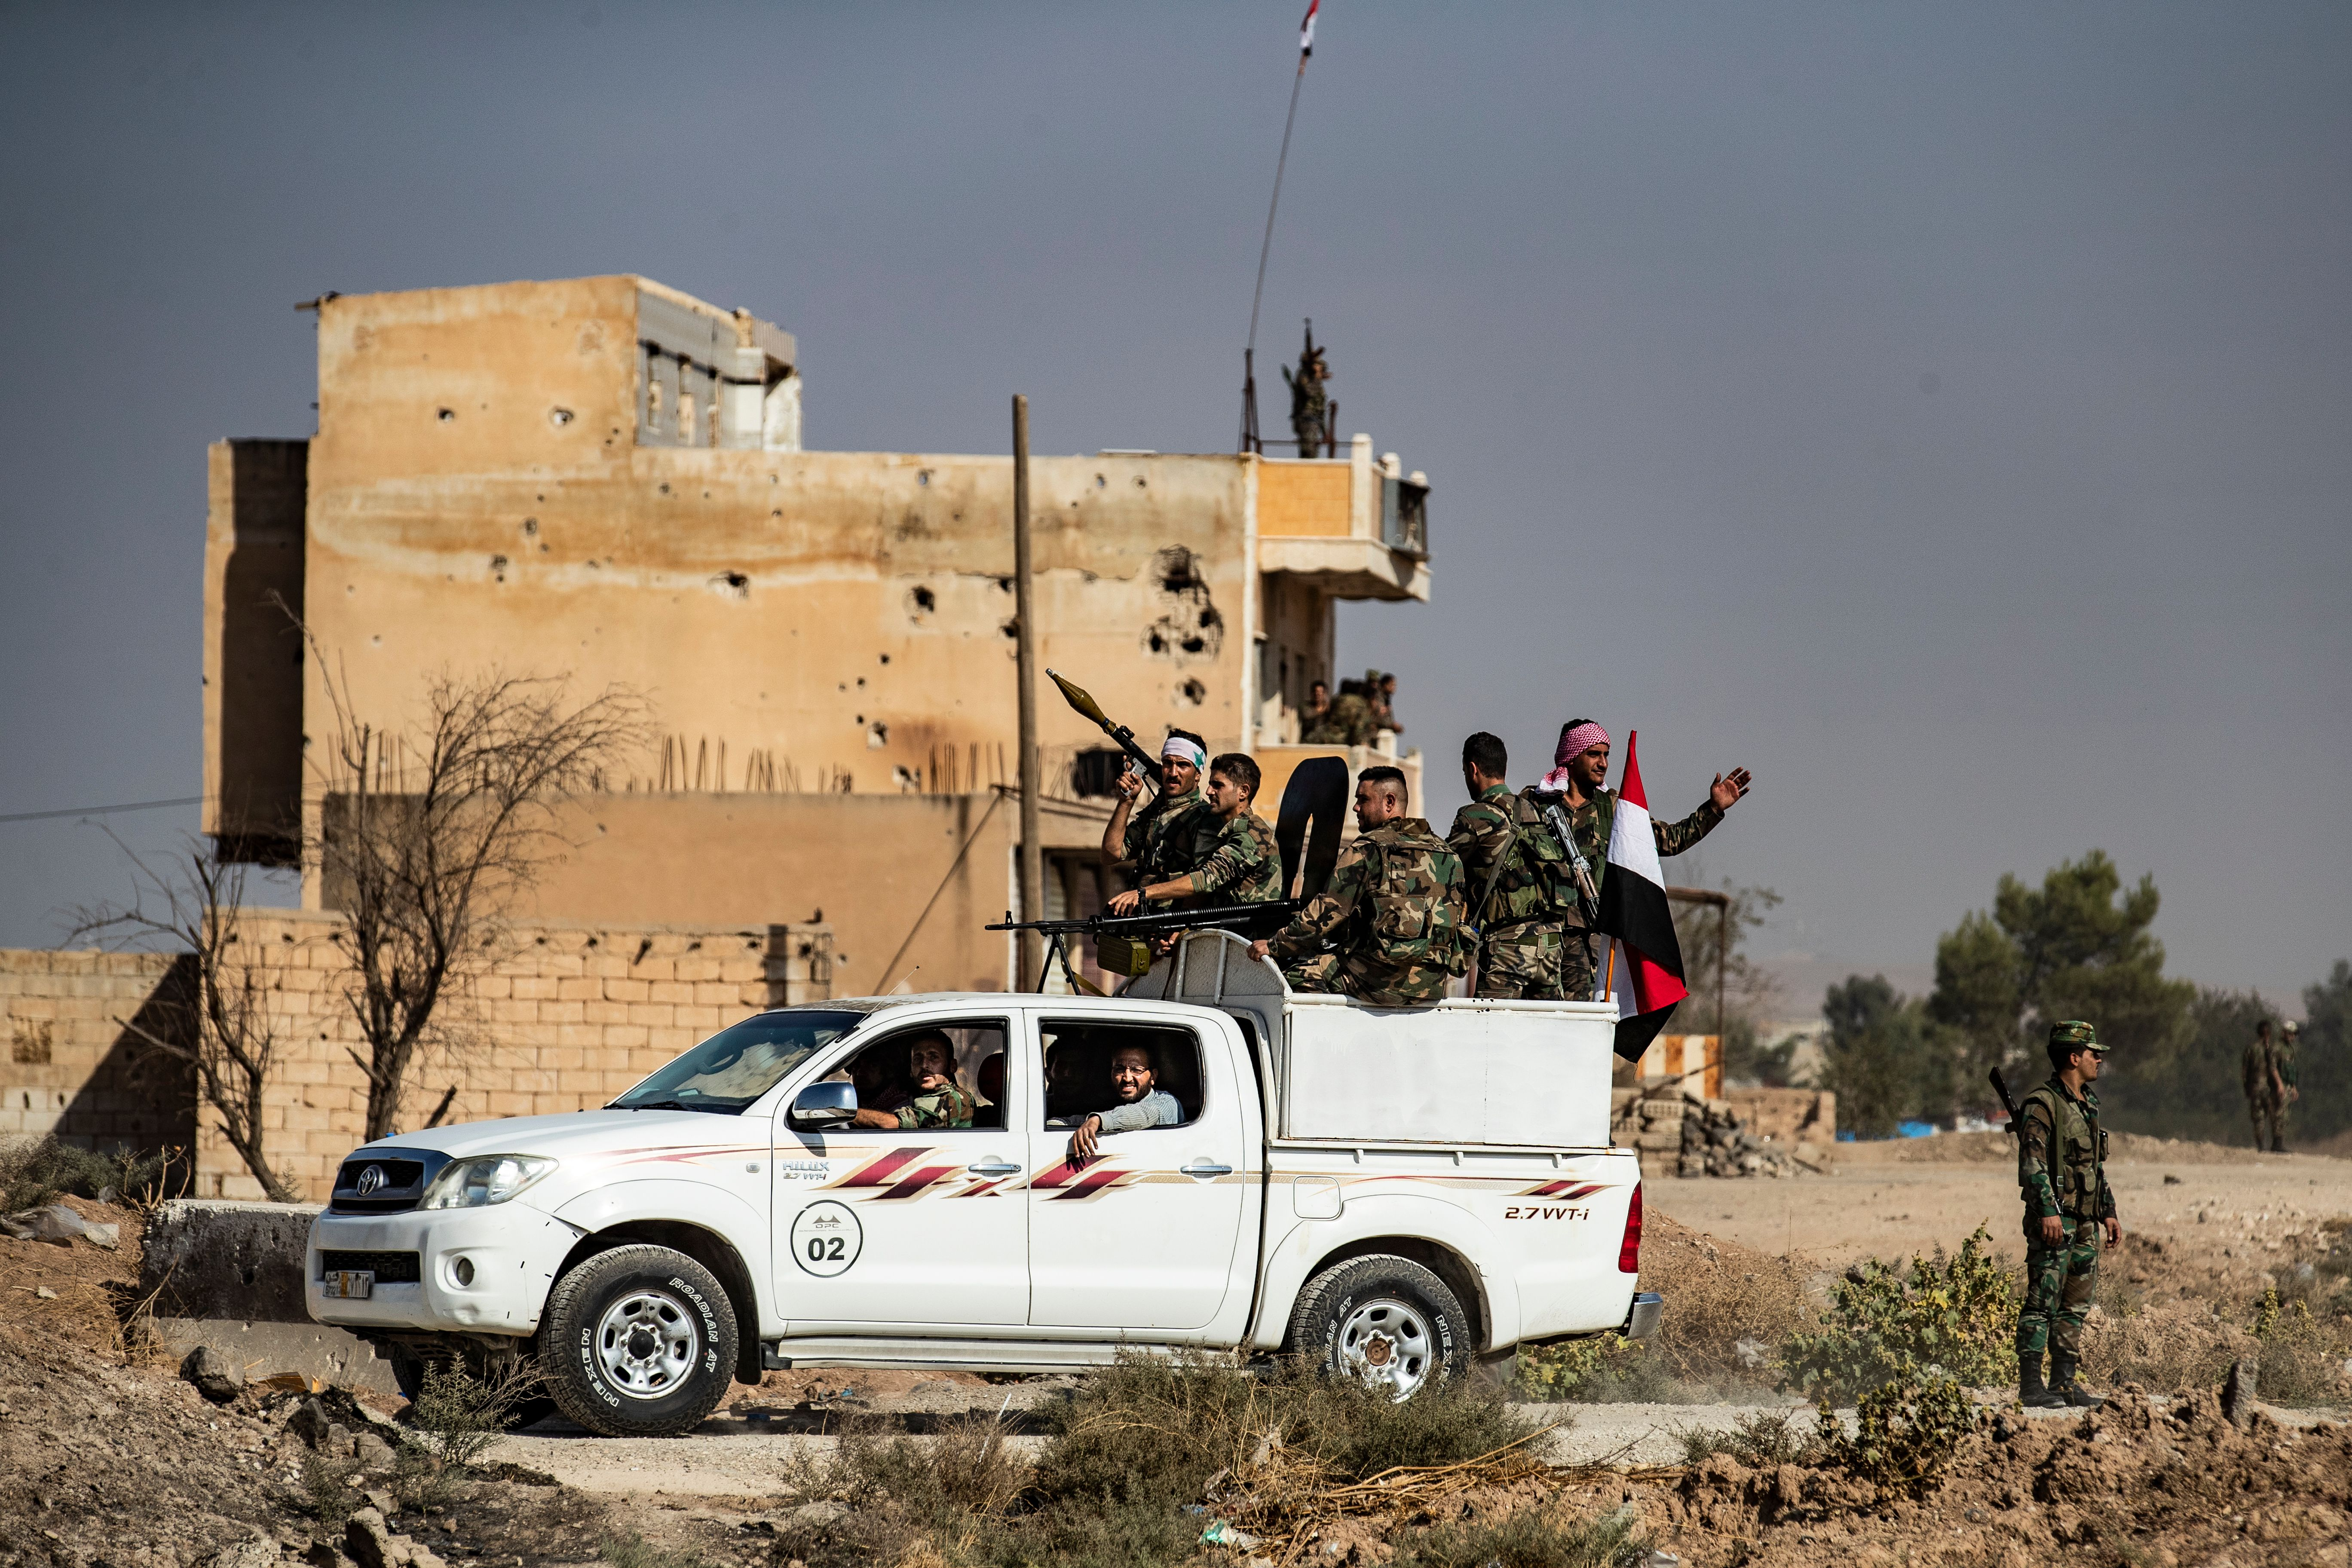 Syrian government forces arrive in the town of Tal Tamr, not far from the flashpoint Kurdish Syrian town of Ras al-Ain on the border with Turkey, which has been a key target of Turkish forces and their proxies since they launched their military assault, on October 15, 2019. - Syrian regime troops arrived after Damascus deployed troops to the country's north to contain a days-long Turkish offensive. (Photo by Delil SOULEIMAN / AFP) (Photo by DELIL SOULEIMAN/AFP via Getty Images)